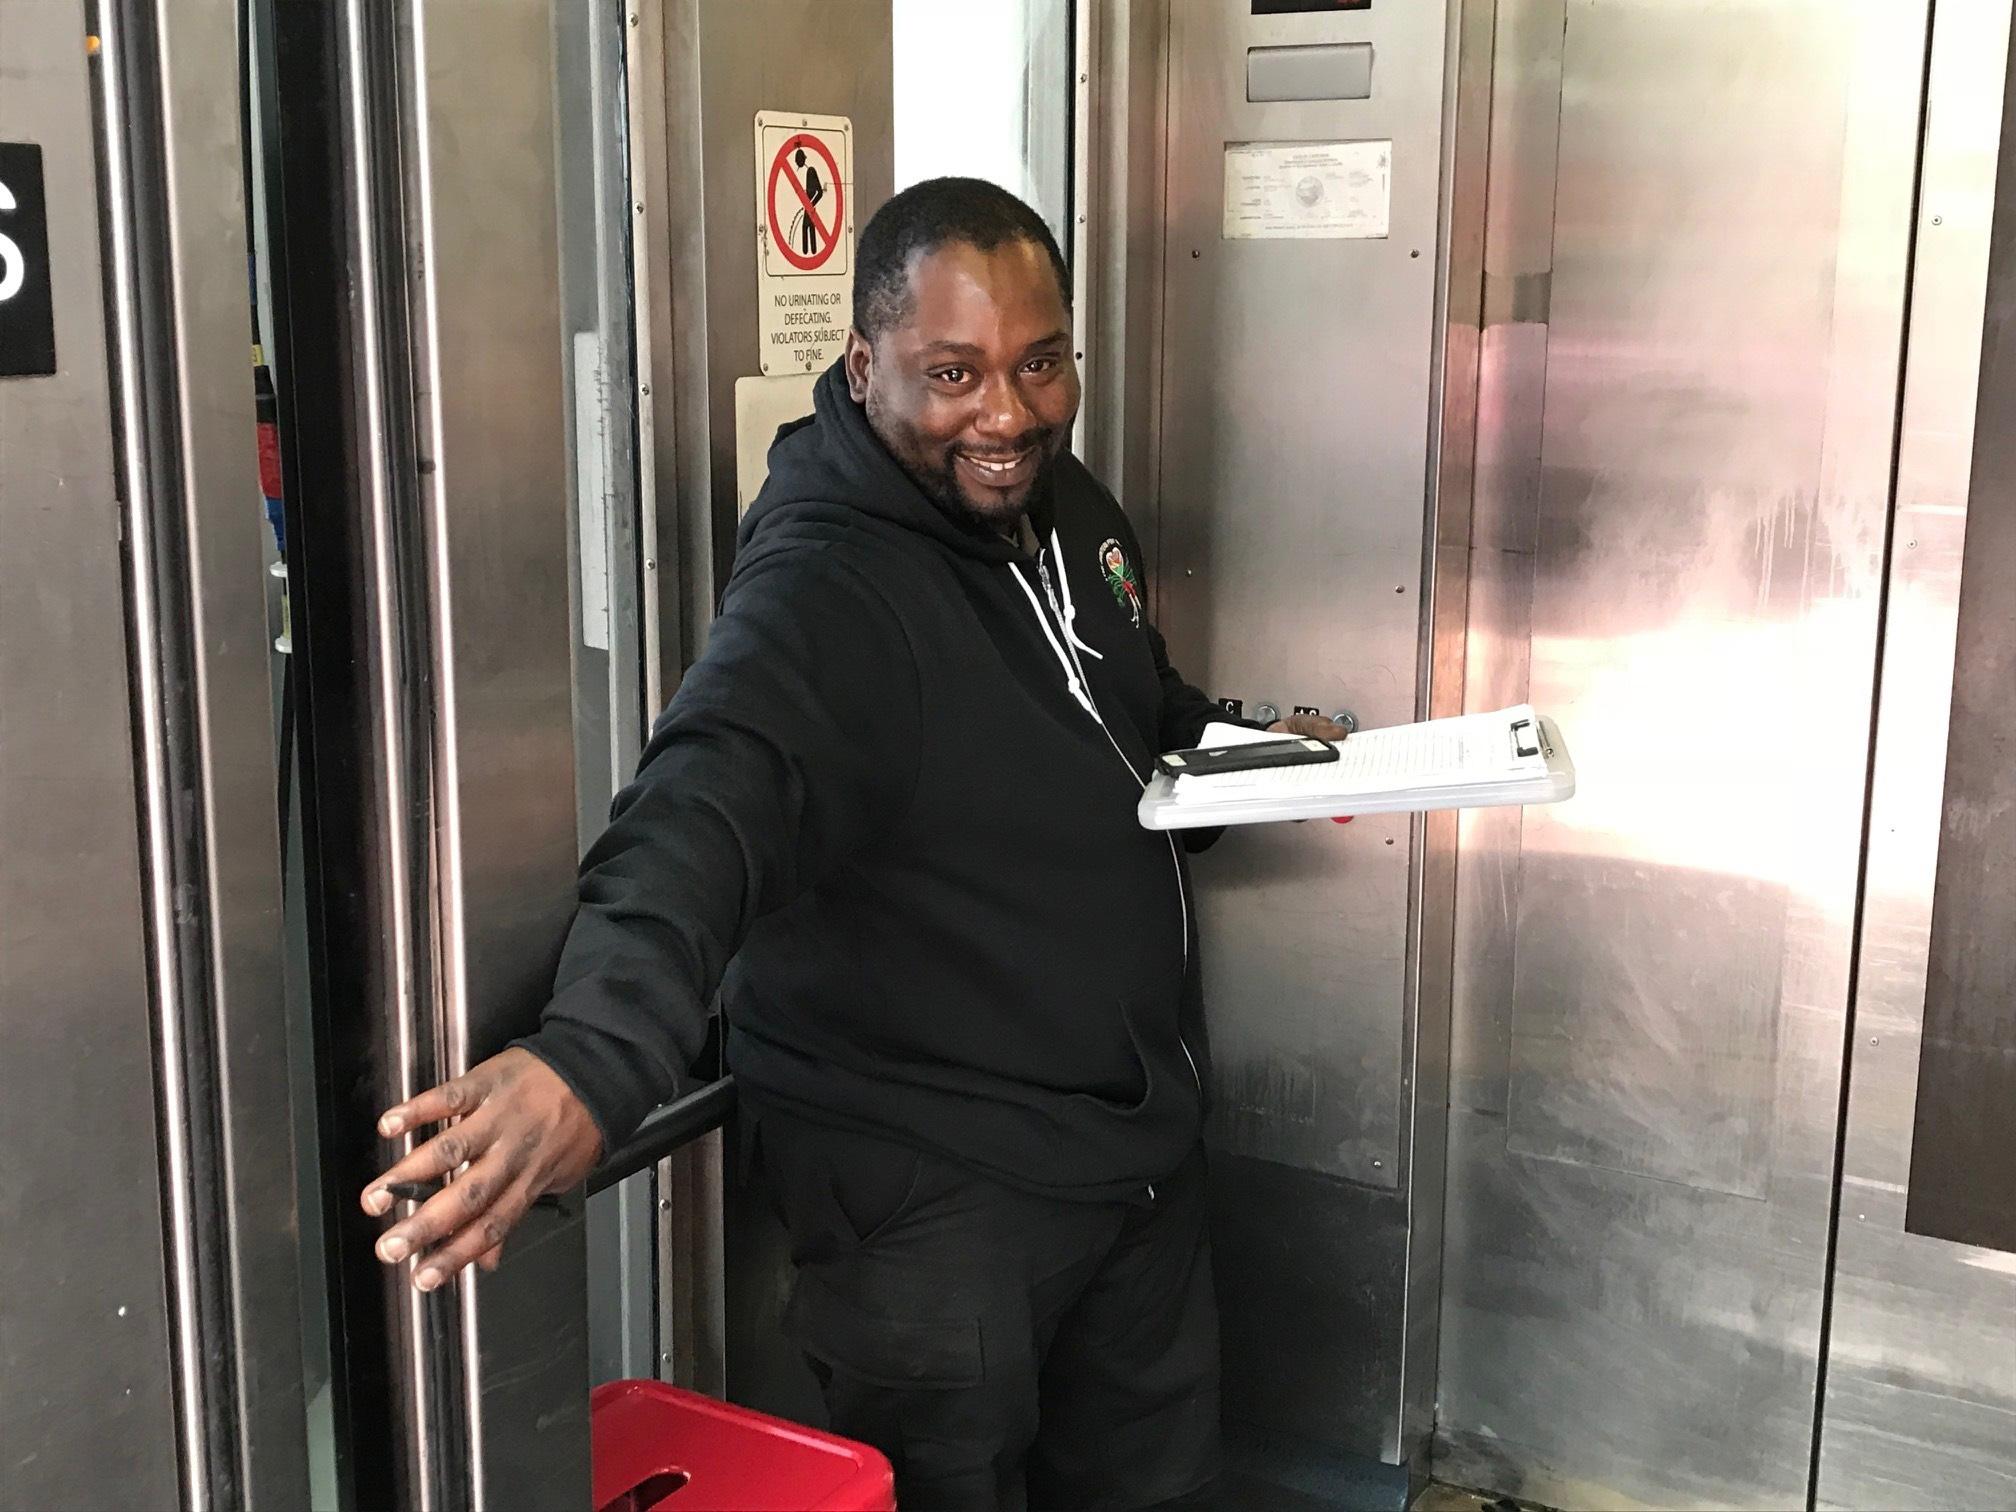 Charles Jones greets customers at the elevator